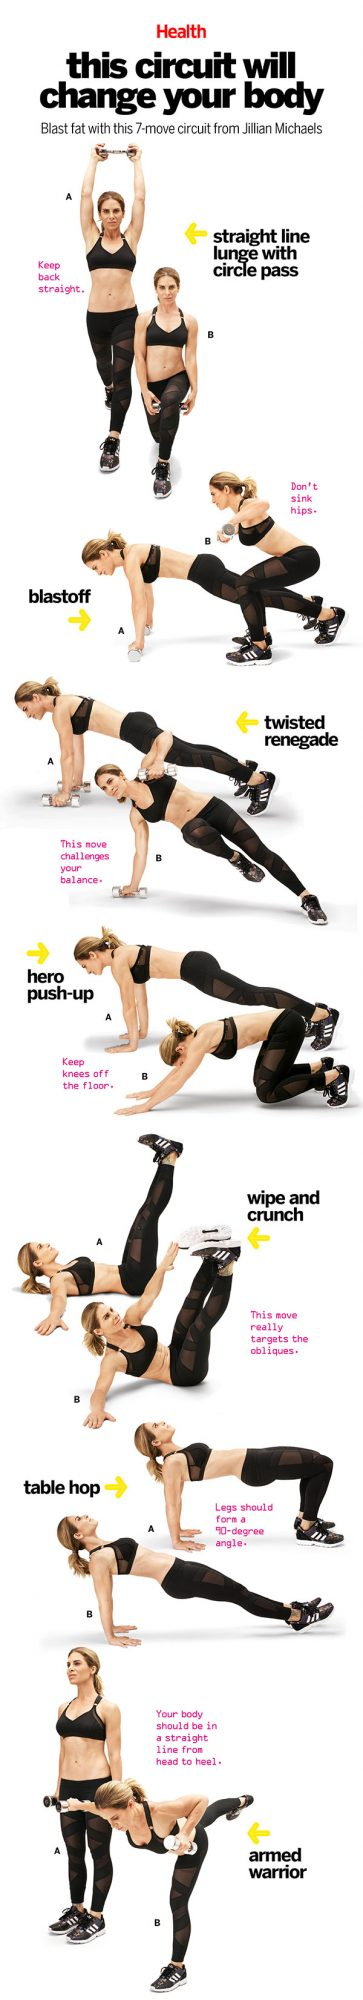 Pin It: The Jillian Michaels Circuit Workout